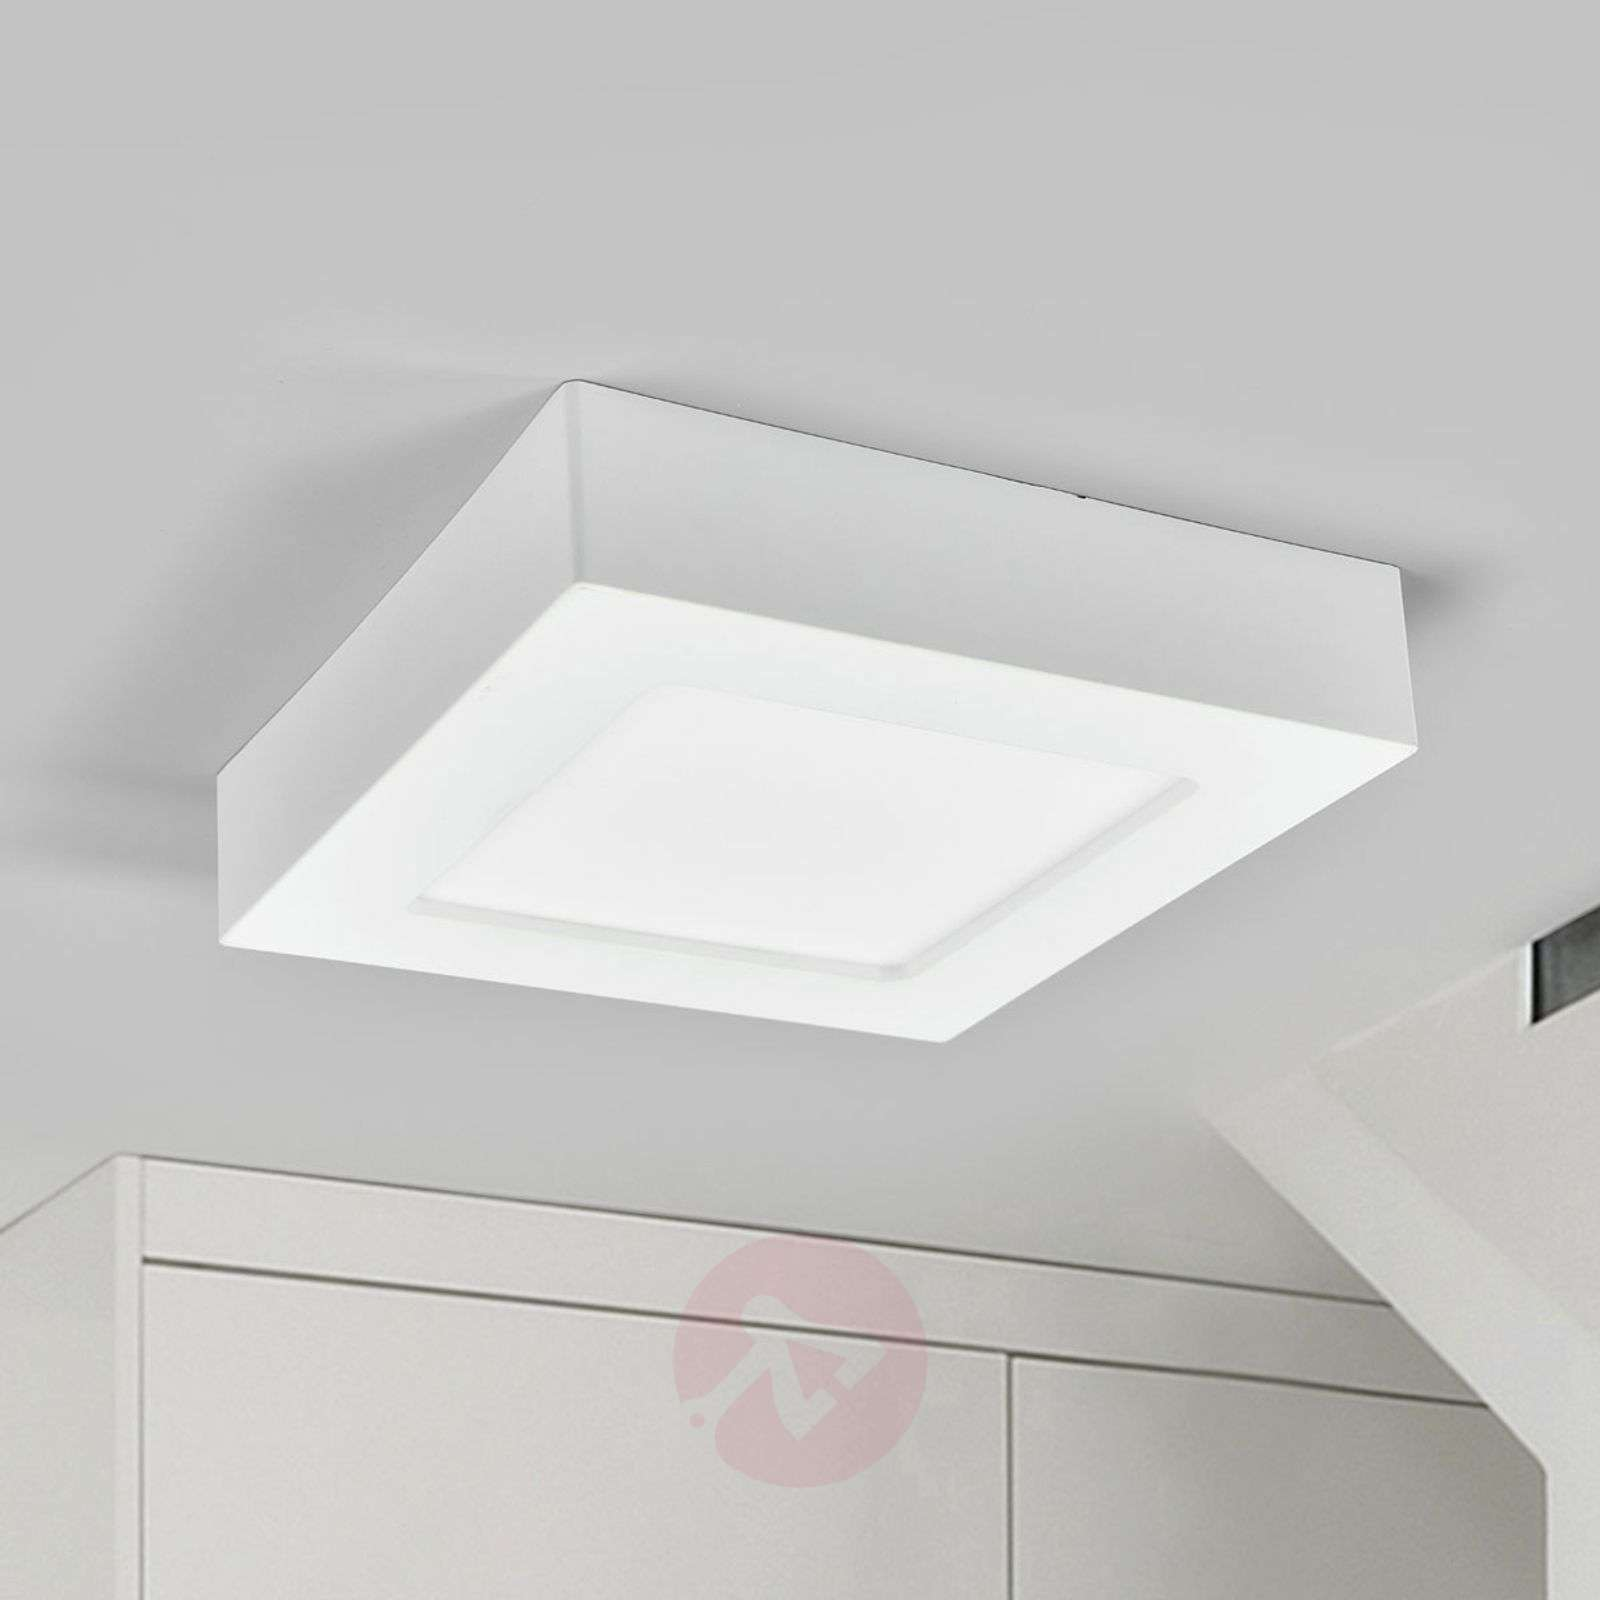 White led bathroom ceiling light marlo ip44 lights white led bathroom ceiling light marlo ip44 9978067 02 aloadofball Image collections